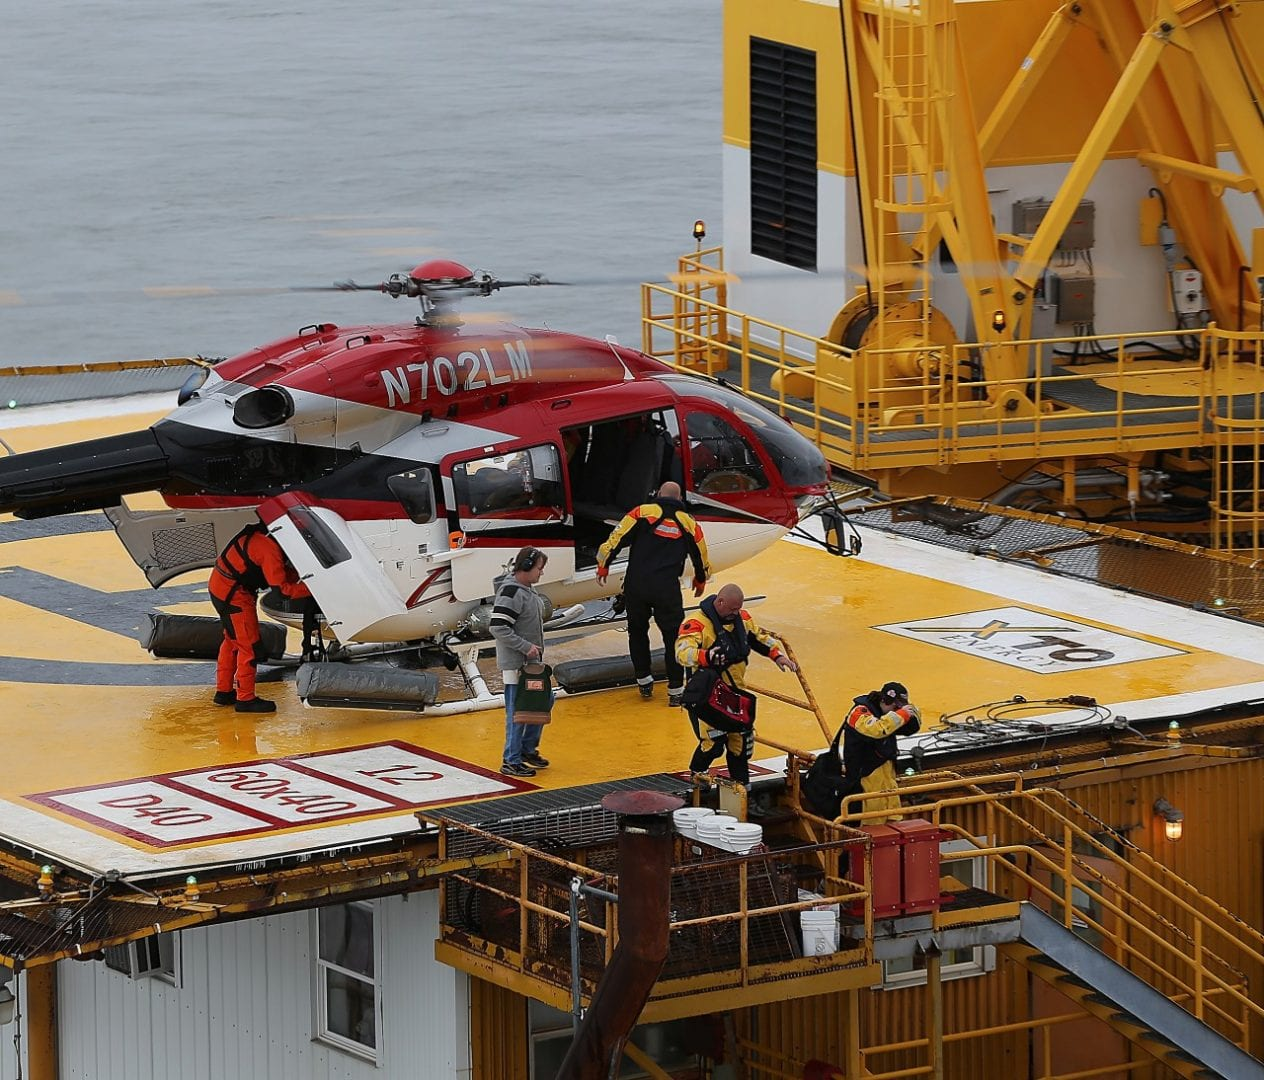 H145 Offshore